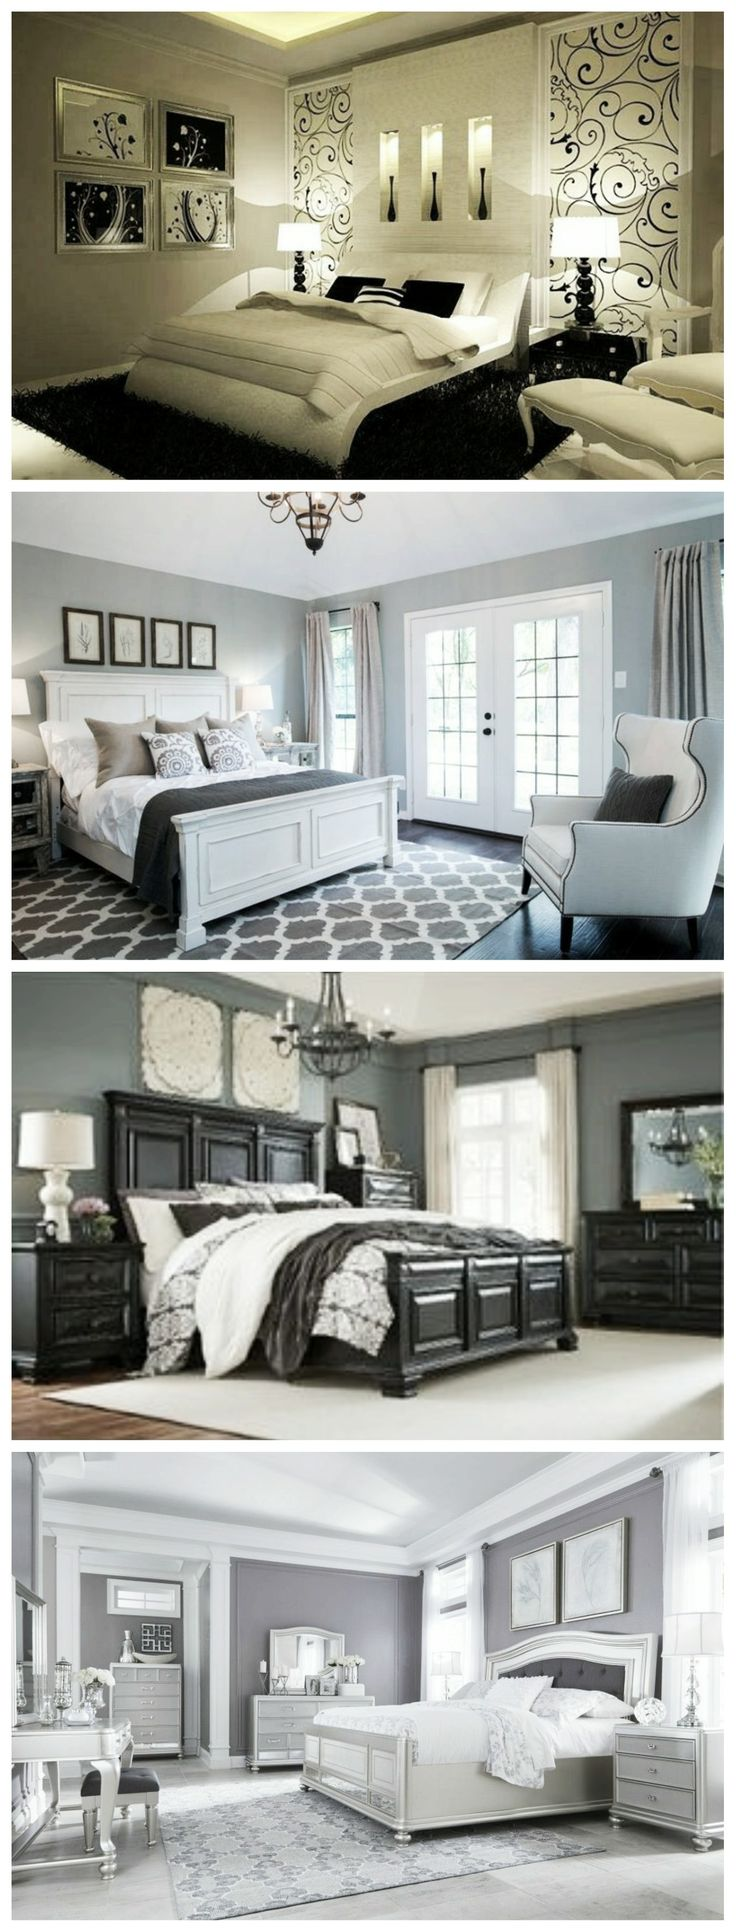 best bedroom decor for couples romantic images on pinterest